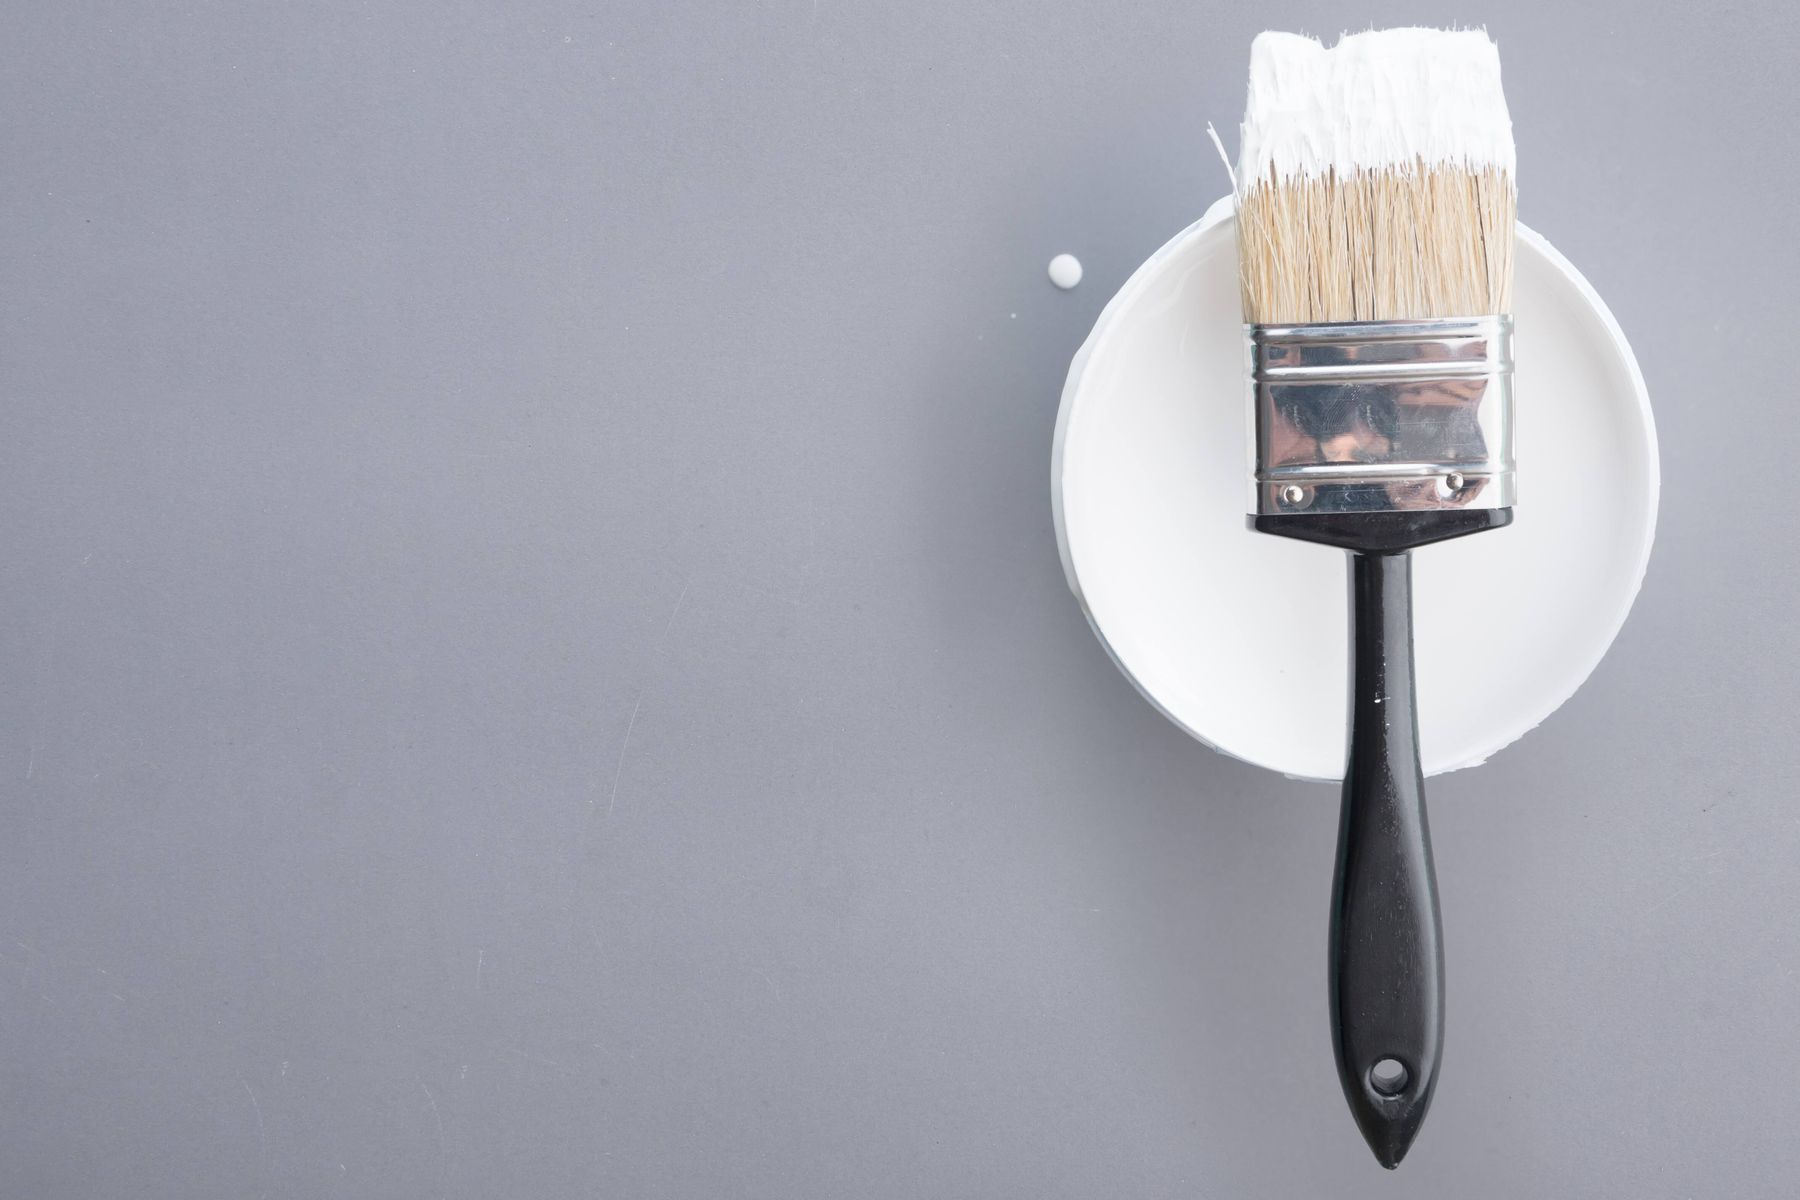 Paint brush leaning on a tin of white paint for repairing cracks in the ceiling